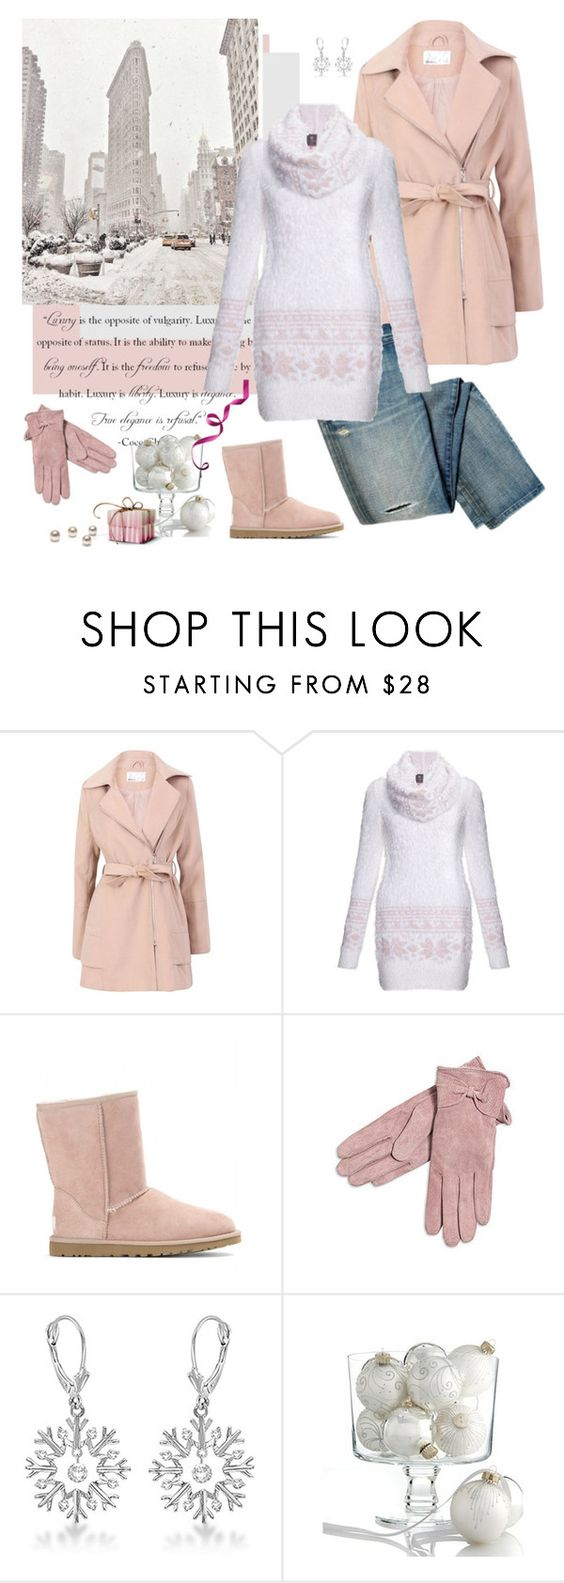 """Winter"" by minni ❤ liked on Polyvore featuring Lavand., Dolce Vita, Lipsy, UGG Australia and Allurez"